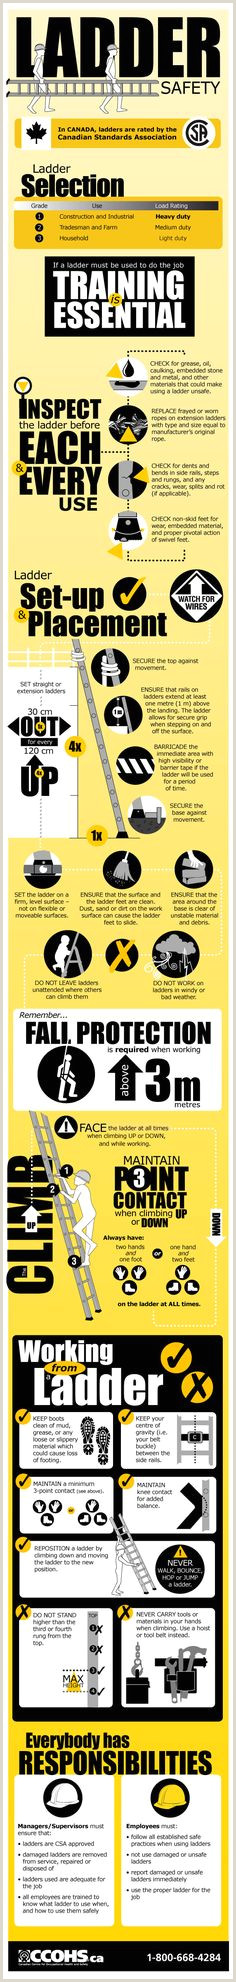 Safety Banner Ideas Health And Safety 30 Ideas On Pinterest